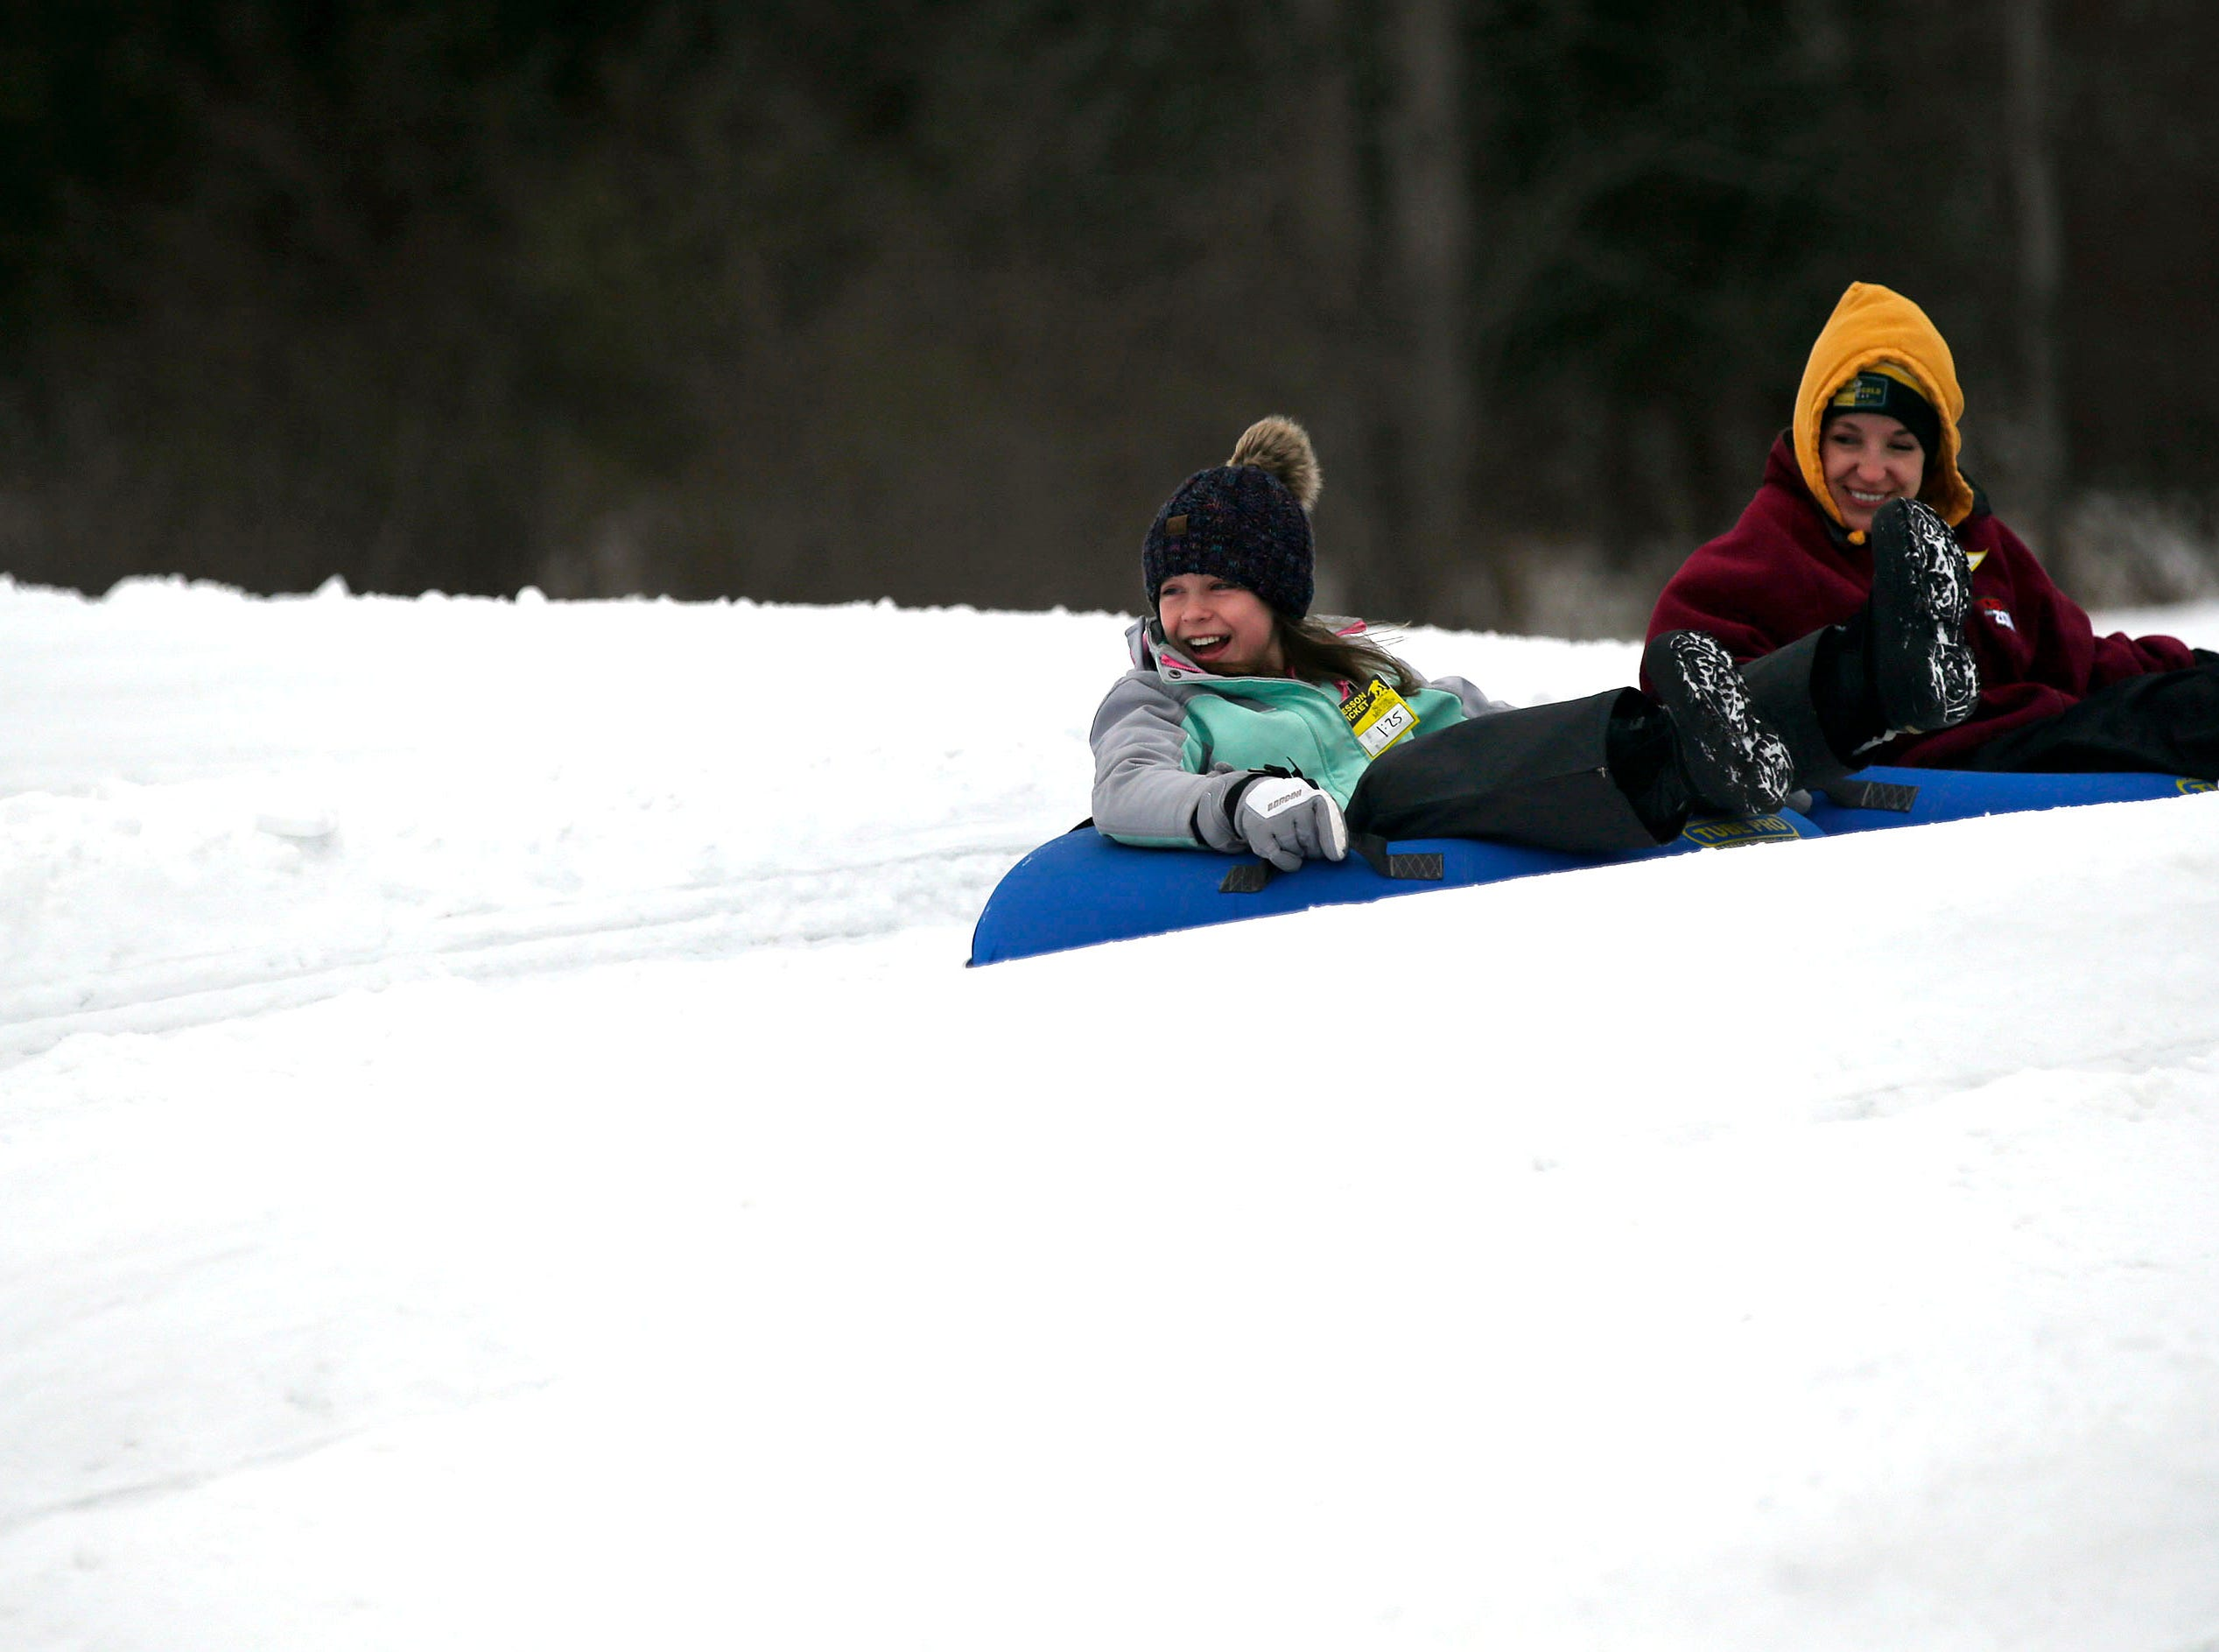 Jennifer Kohnke, center, of Montello and her children Saydee and Klay make a run as a mild winter day brings tubing fans to Nordic Mountain Sunday, January 13, 2019, near Wild Rose, Wis.